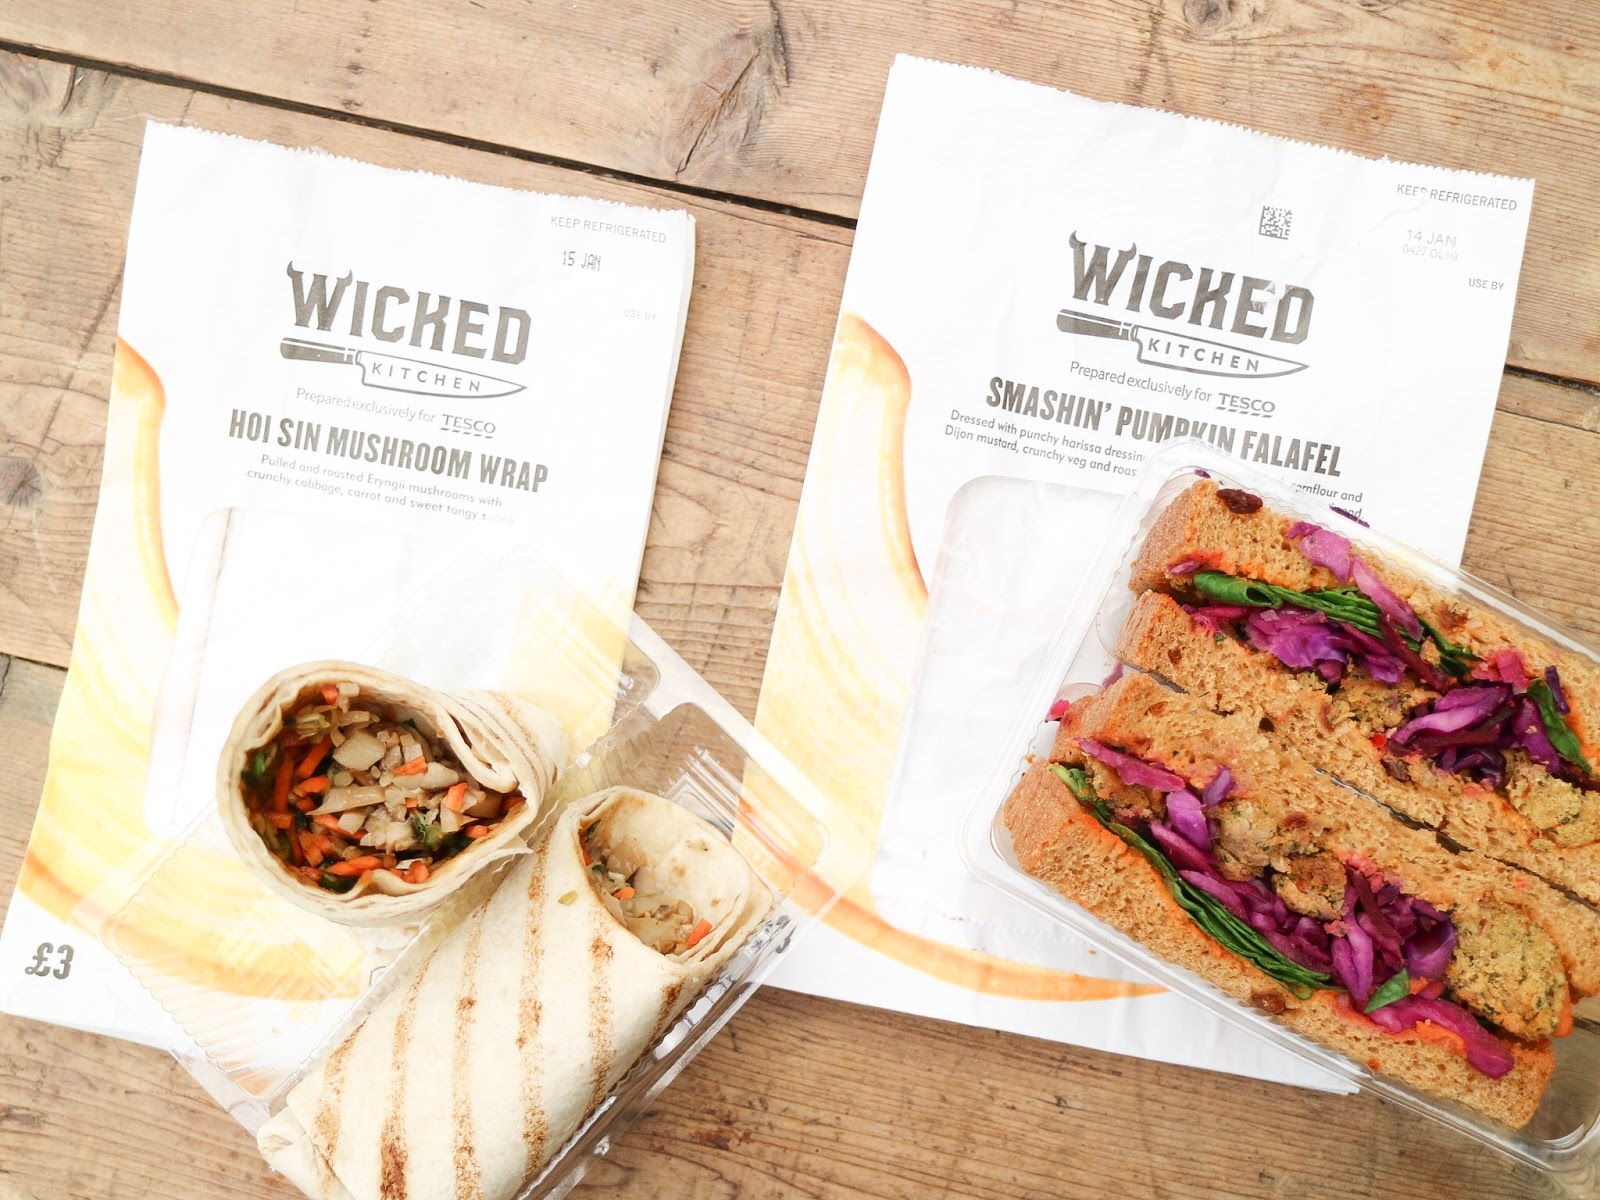 wicked kitchen plant based food range at tesco - Wicked Kitchen